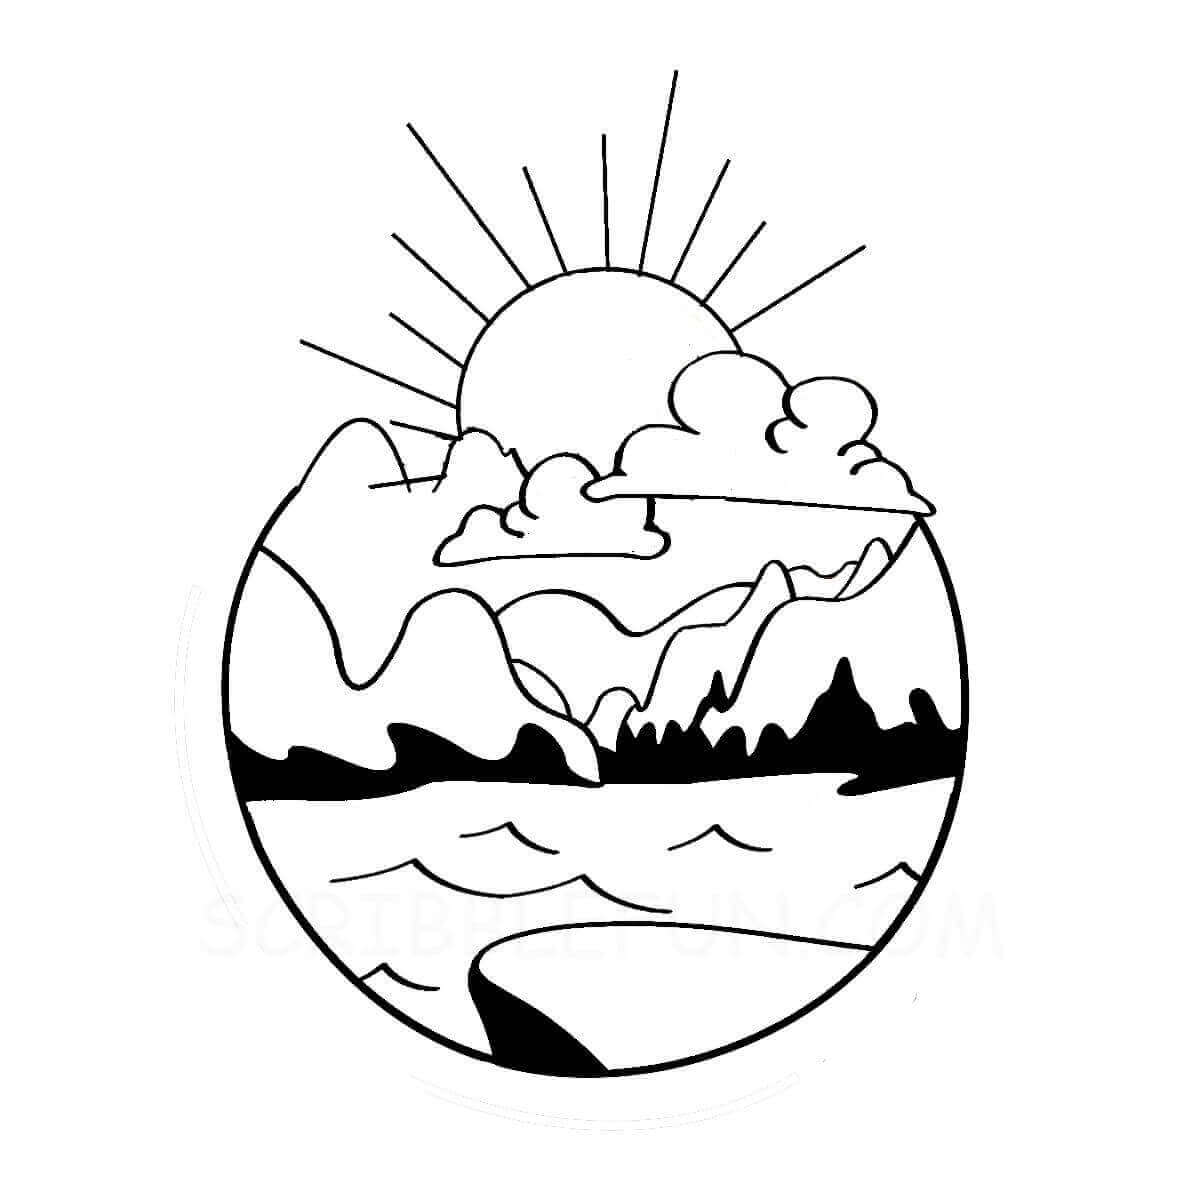 Sun coloring pictures printable